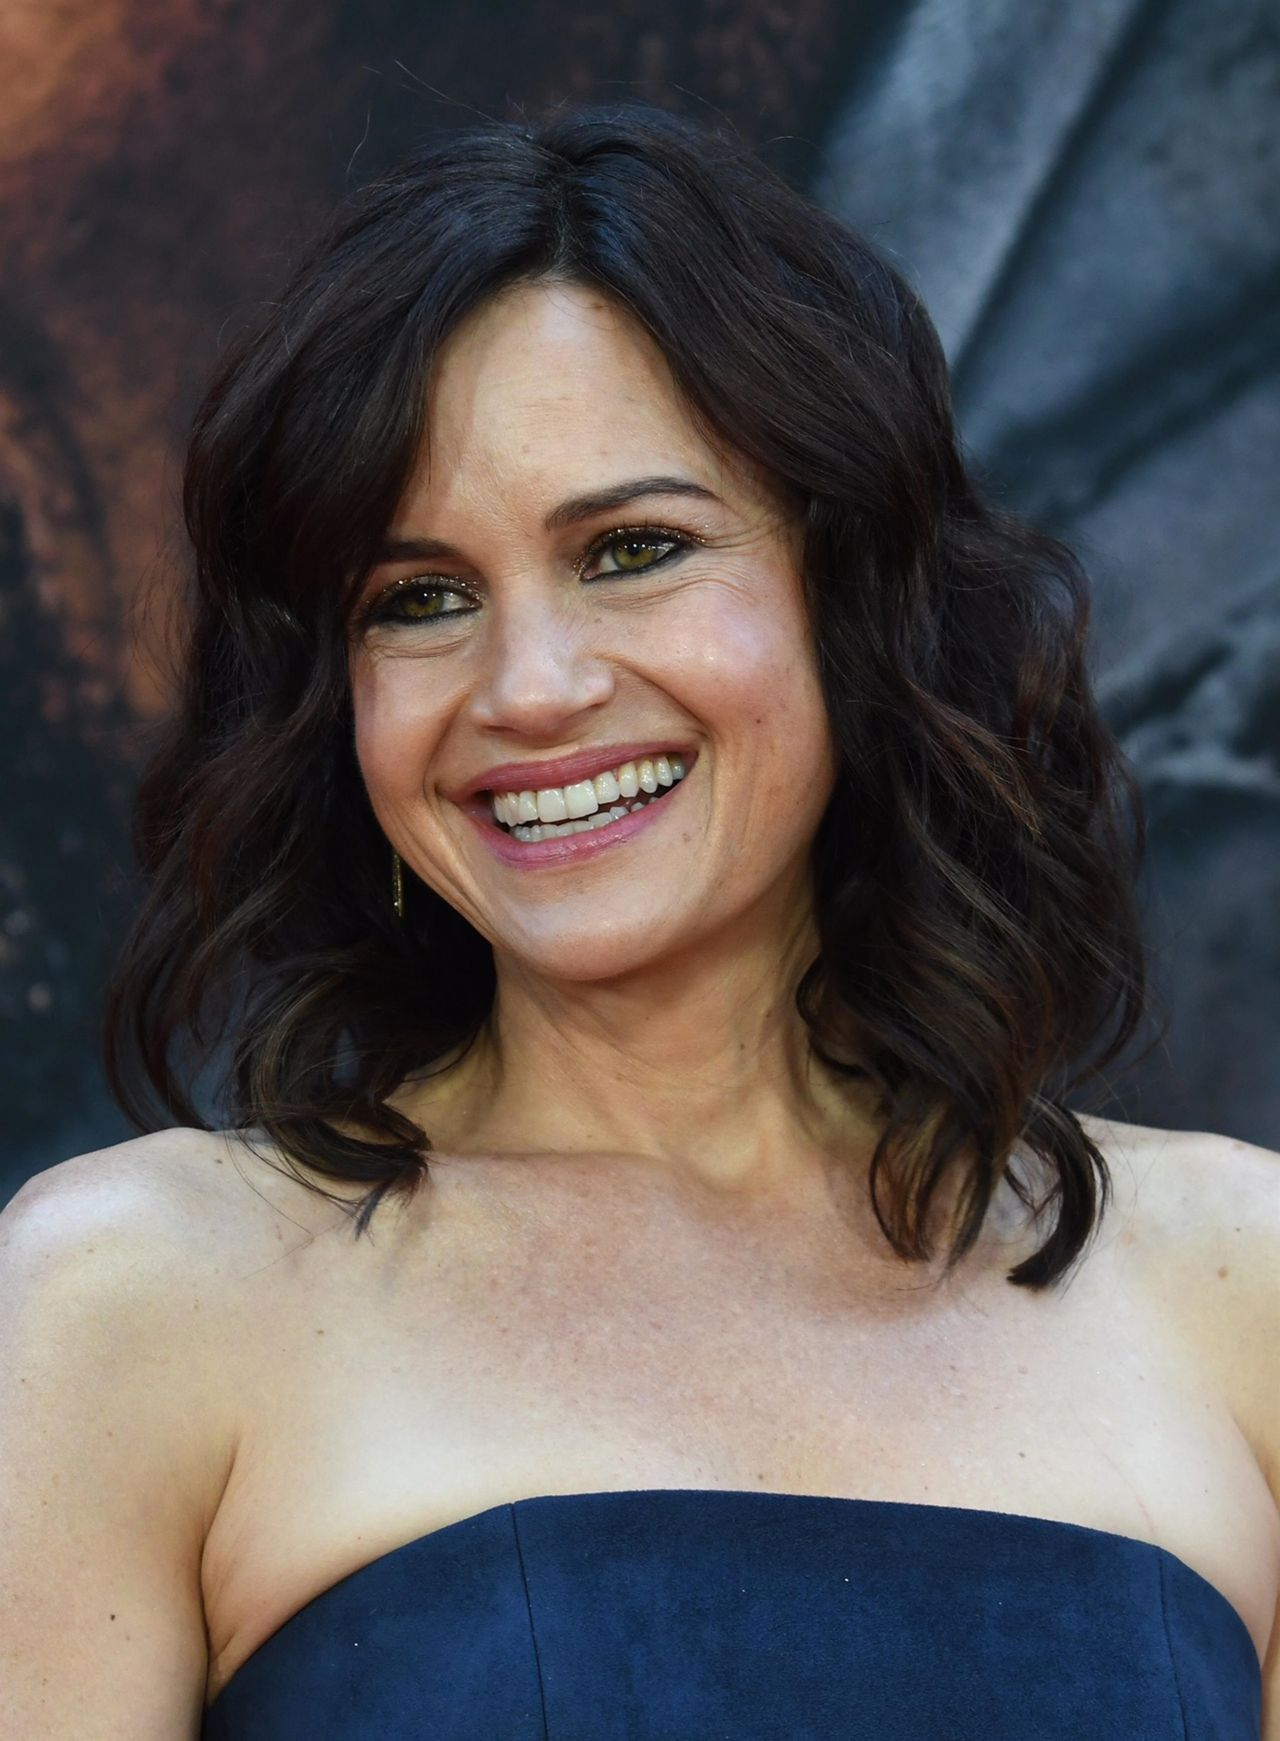 61 Hot Pictures Of Carla Gugino Will Make You Drool For Her   Best Of Comic Books